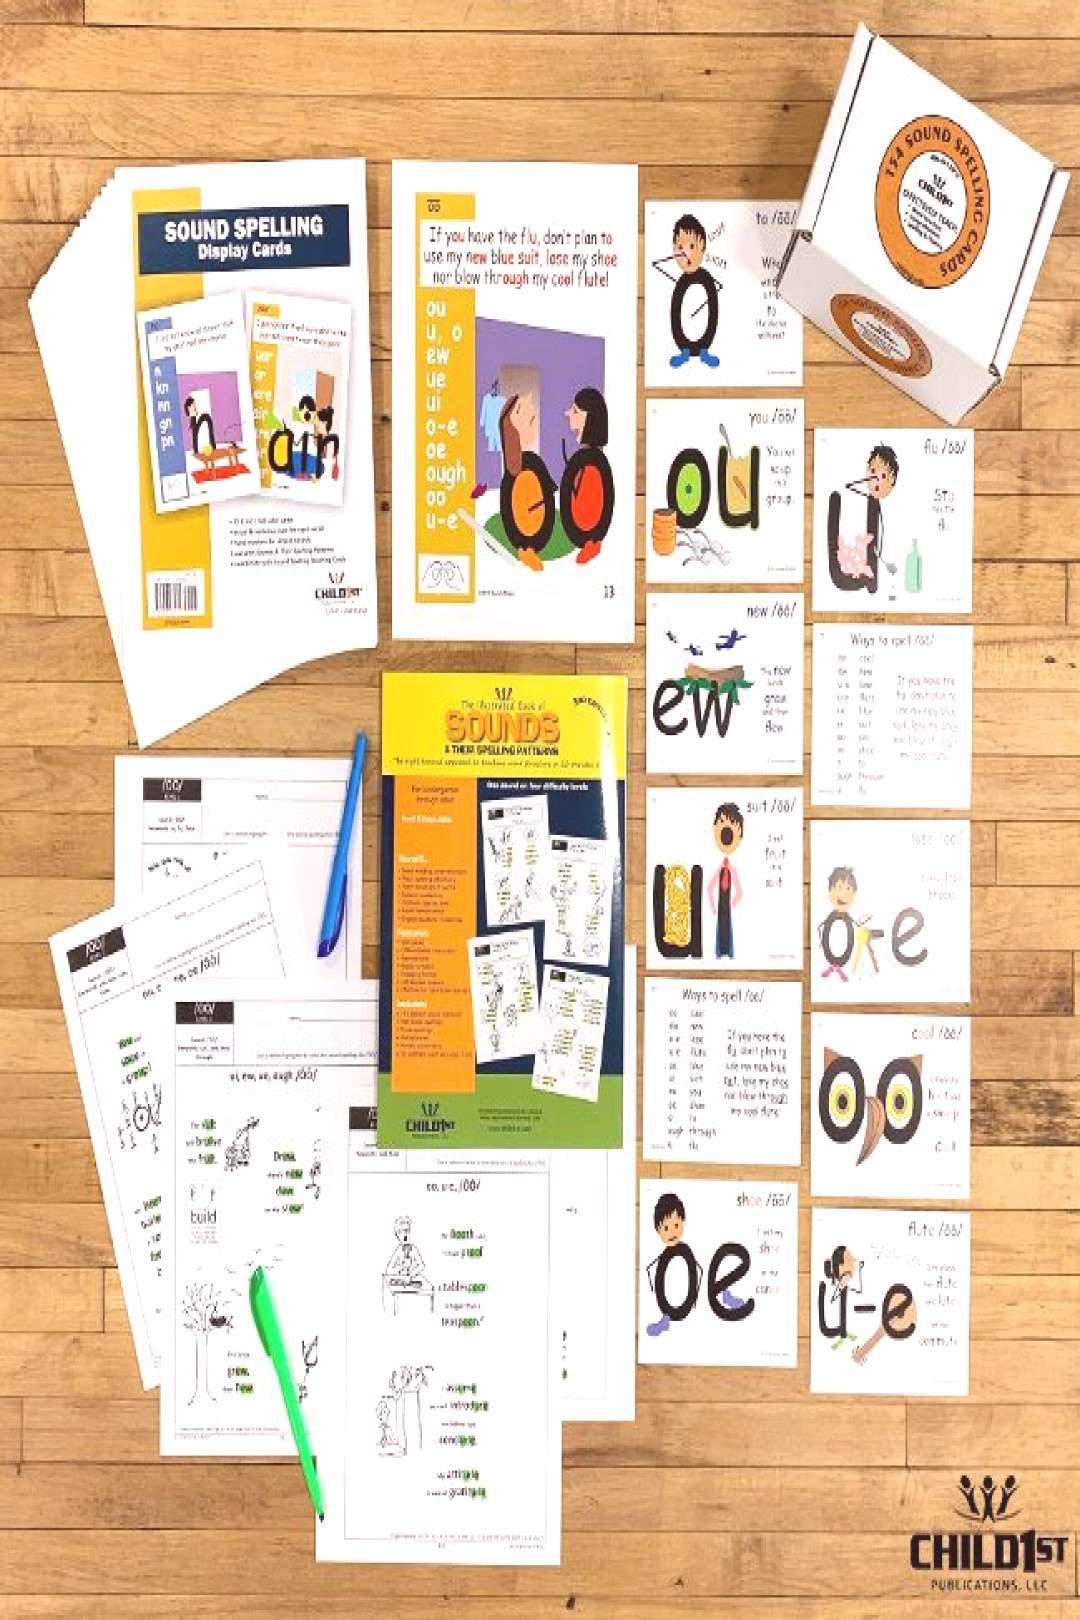 Phonics and Spelling ??Teach all of the sound spelling in the English language as well as